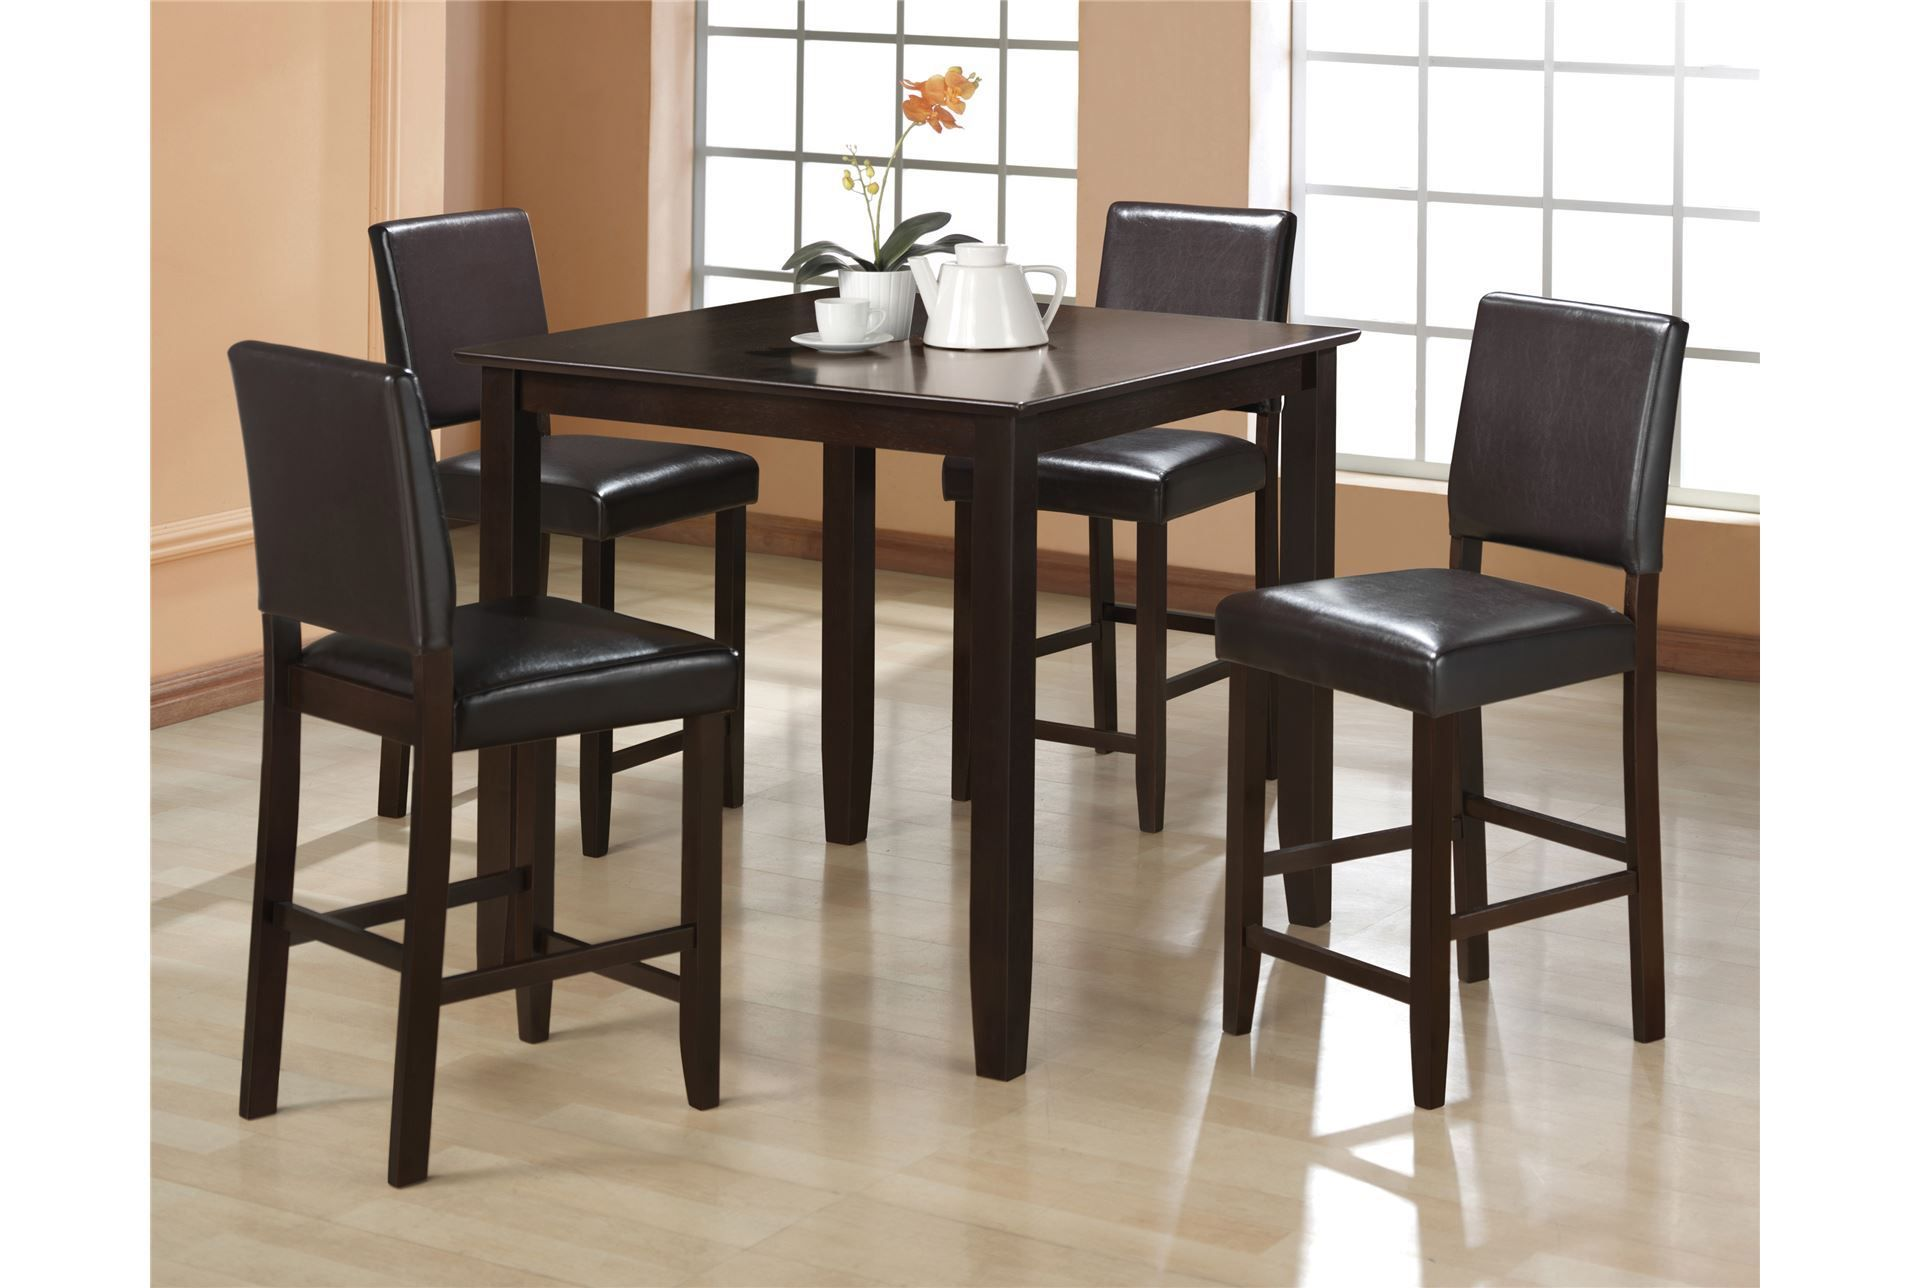 Derick 5 Piece Counter Set Dining Room Furniture Sets Counter